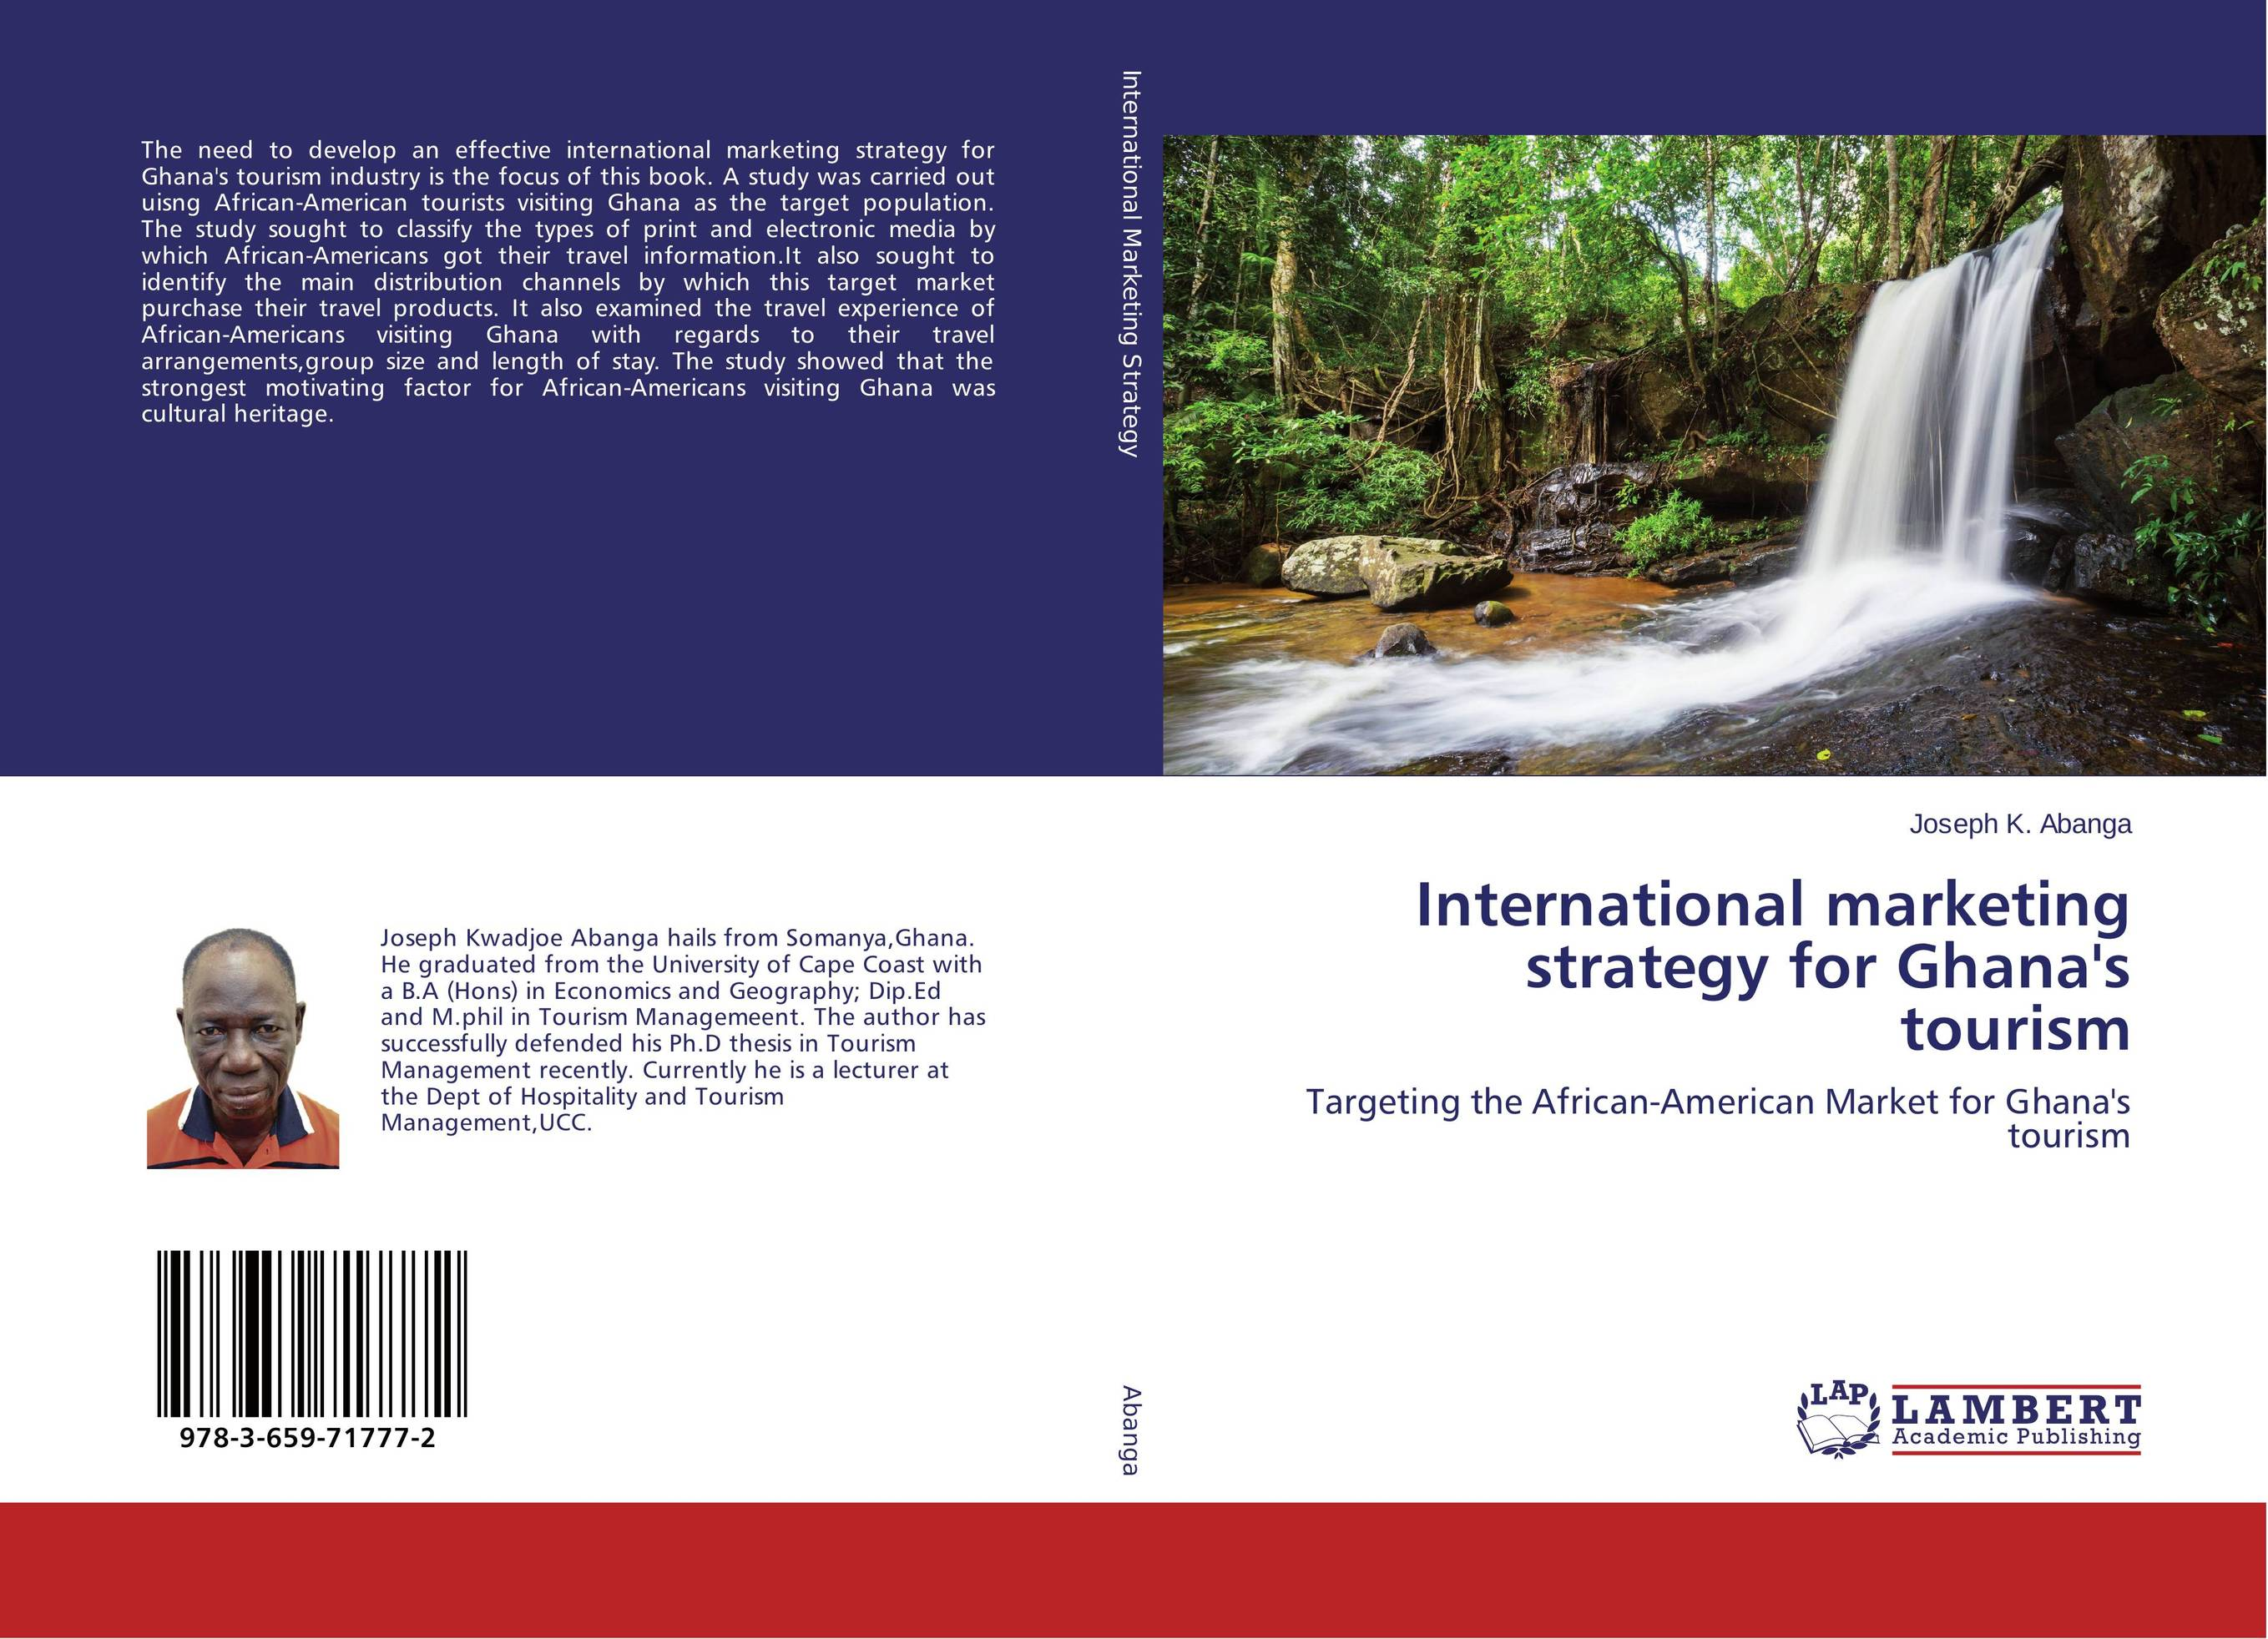 International marketing strategy for Ghana's tourism adding customer value through effective distribution strategy